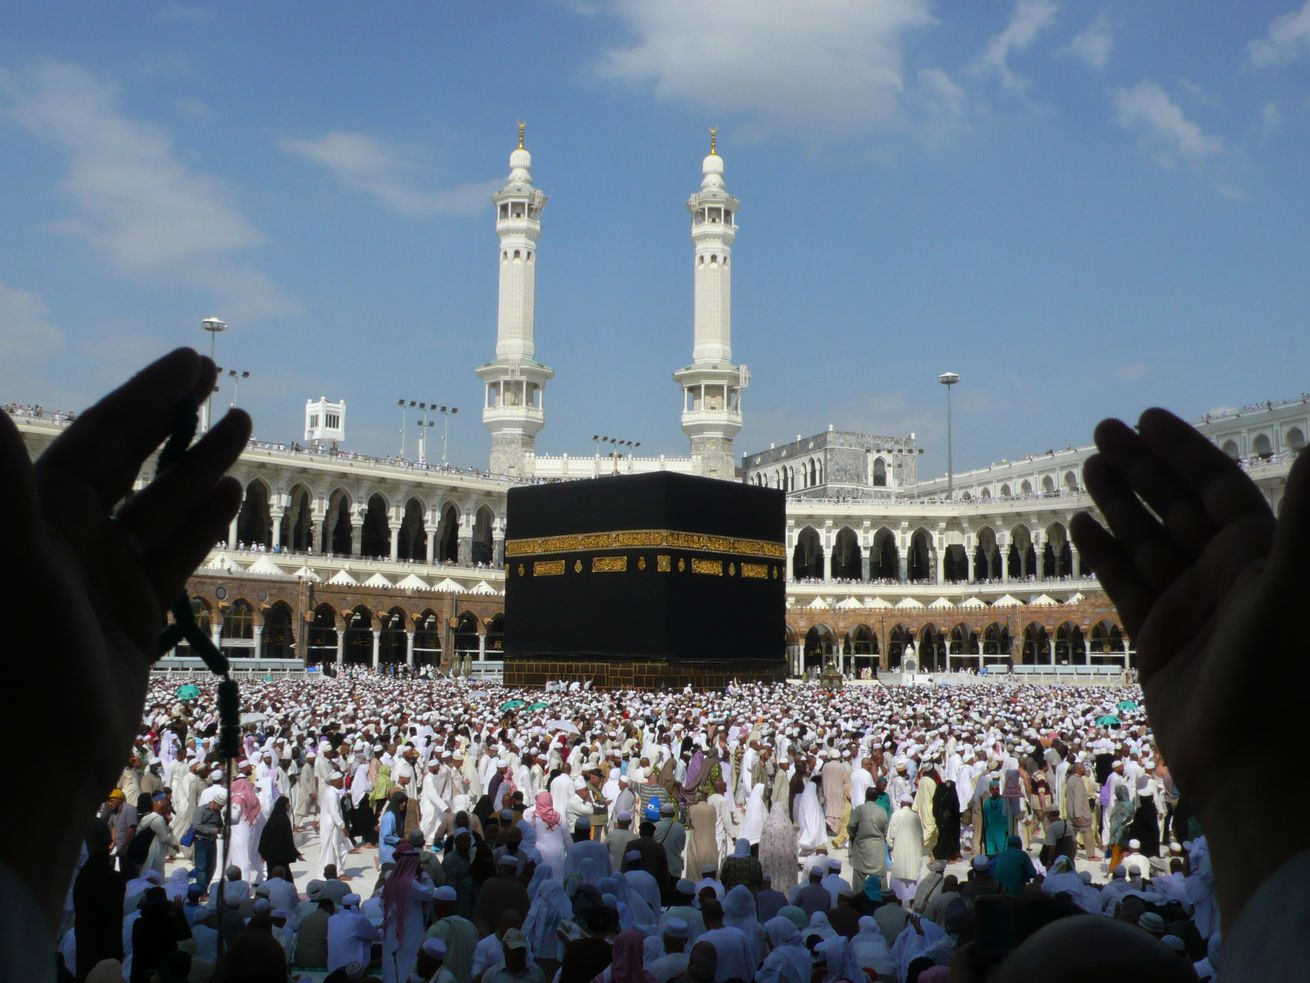 Muslim pilgrims on hajj perform the final walk (Tawaf al-Wadaa) around the Kaaba at the Grand Mosque in the Saudi holy city of Mecca on November 30, 2009.